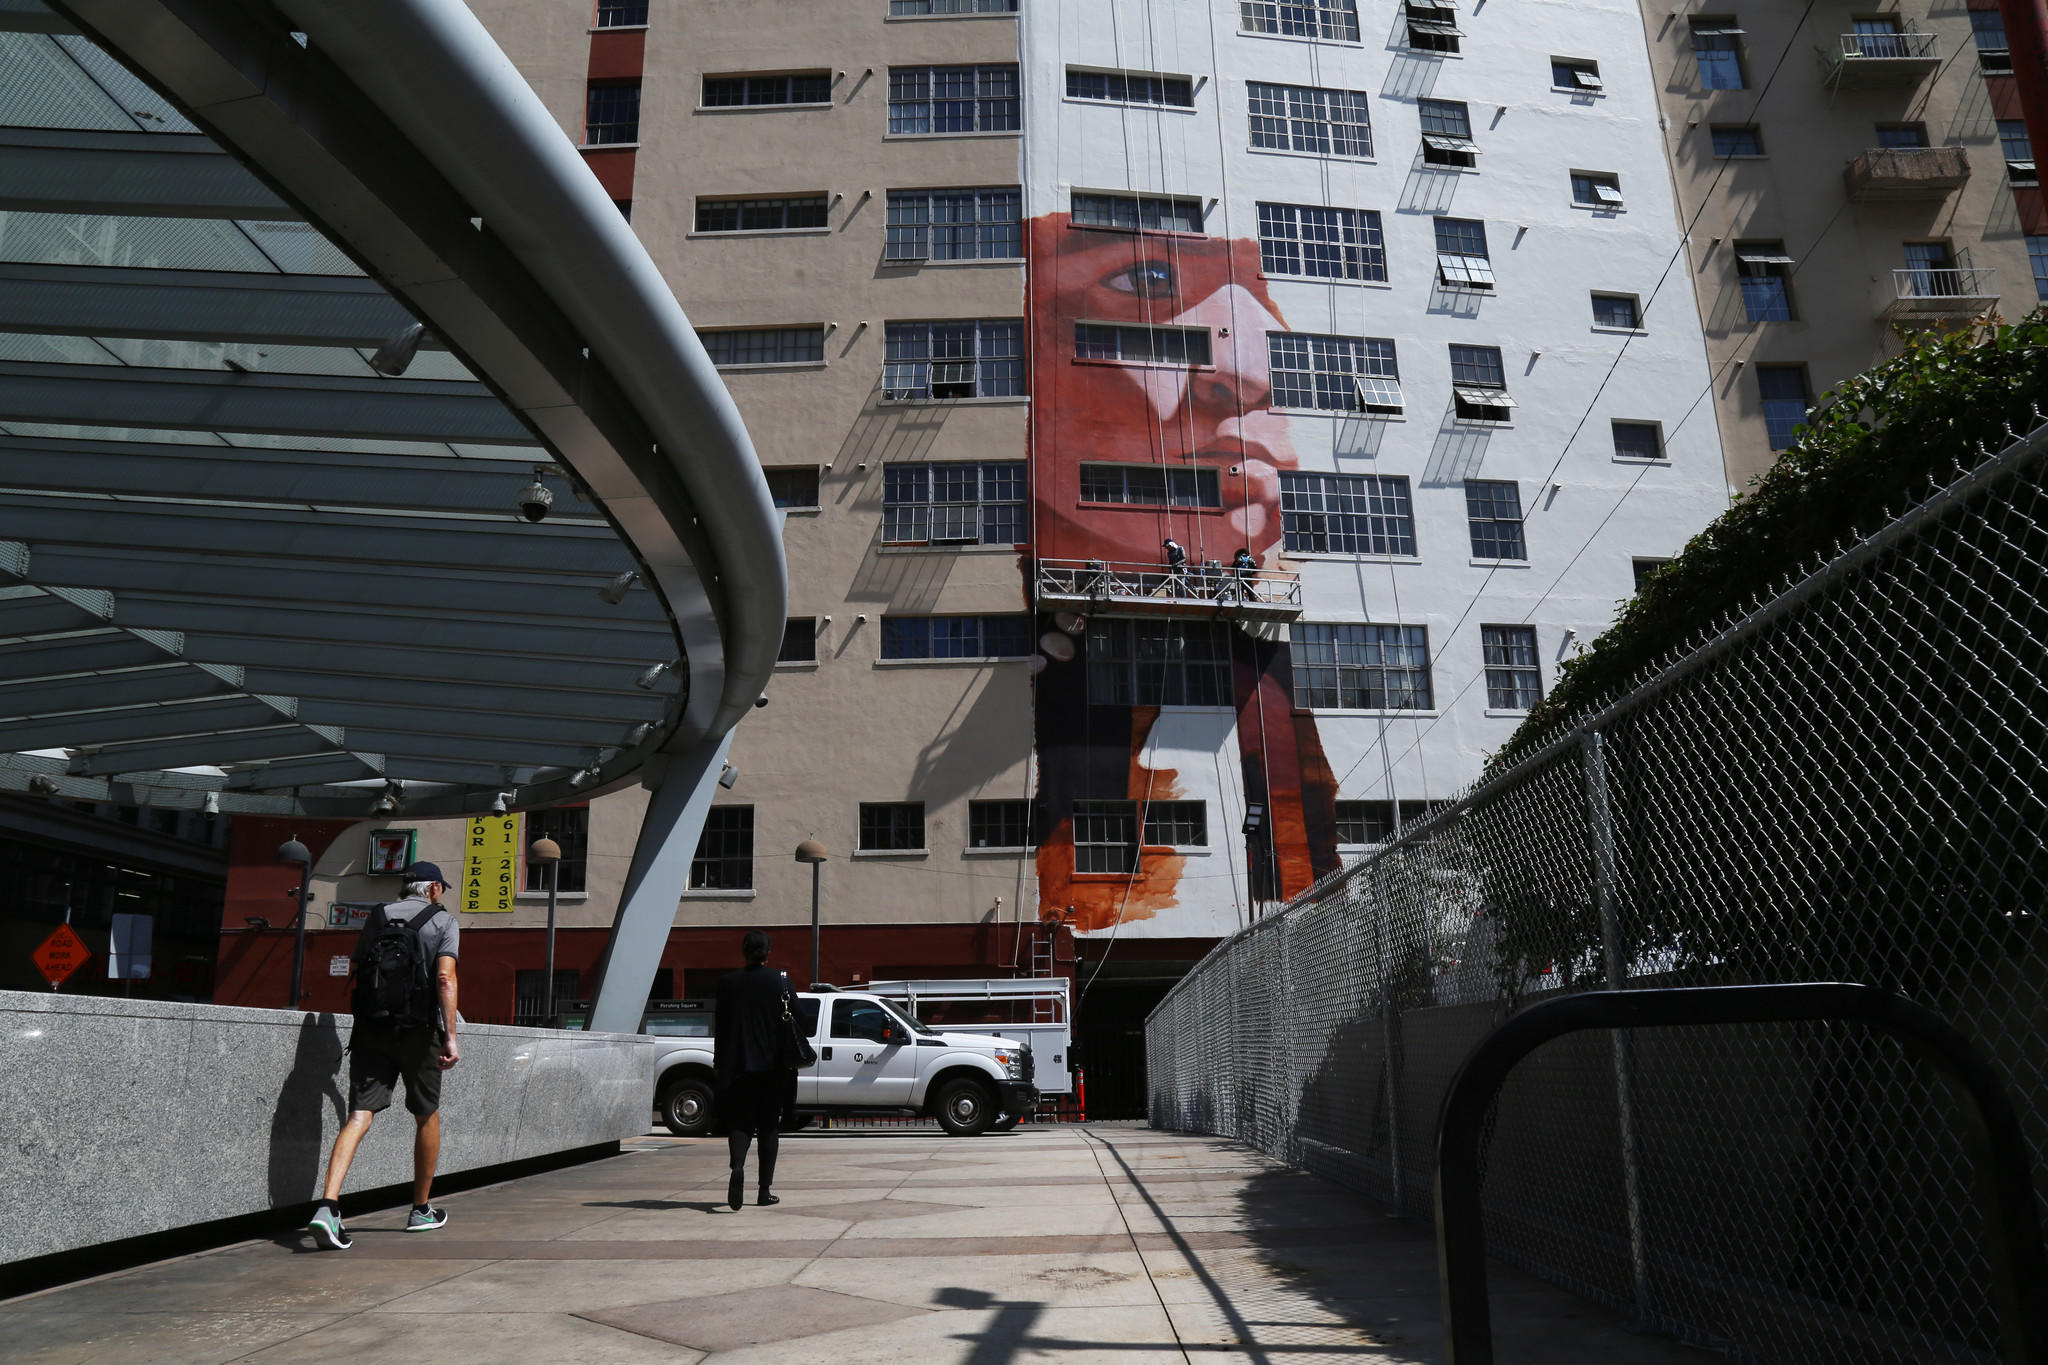 Robert Vargas' new mural as seen from Pershing Square.